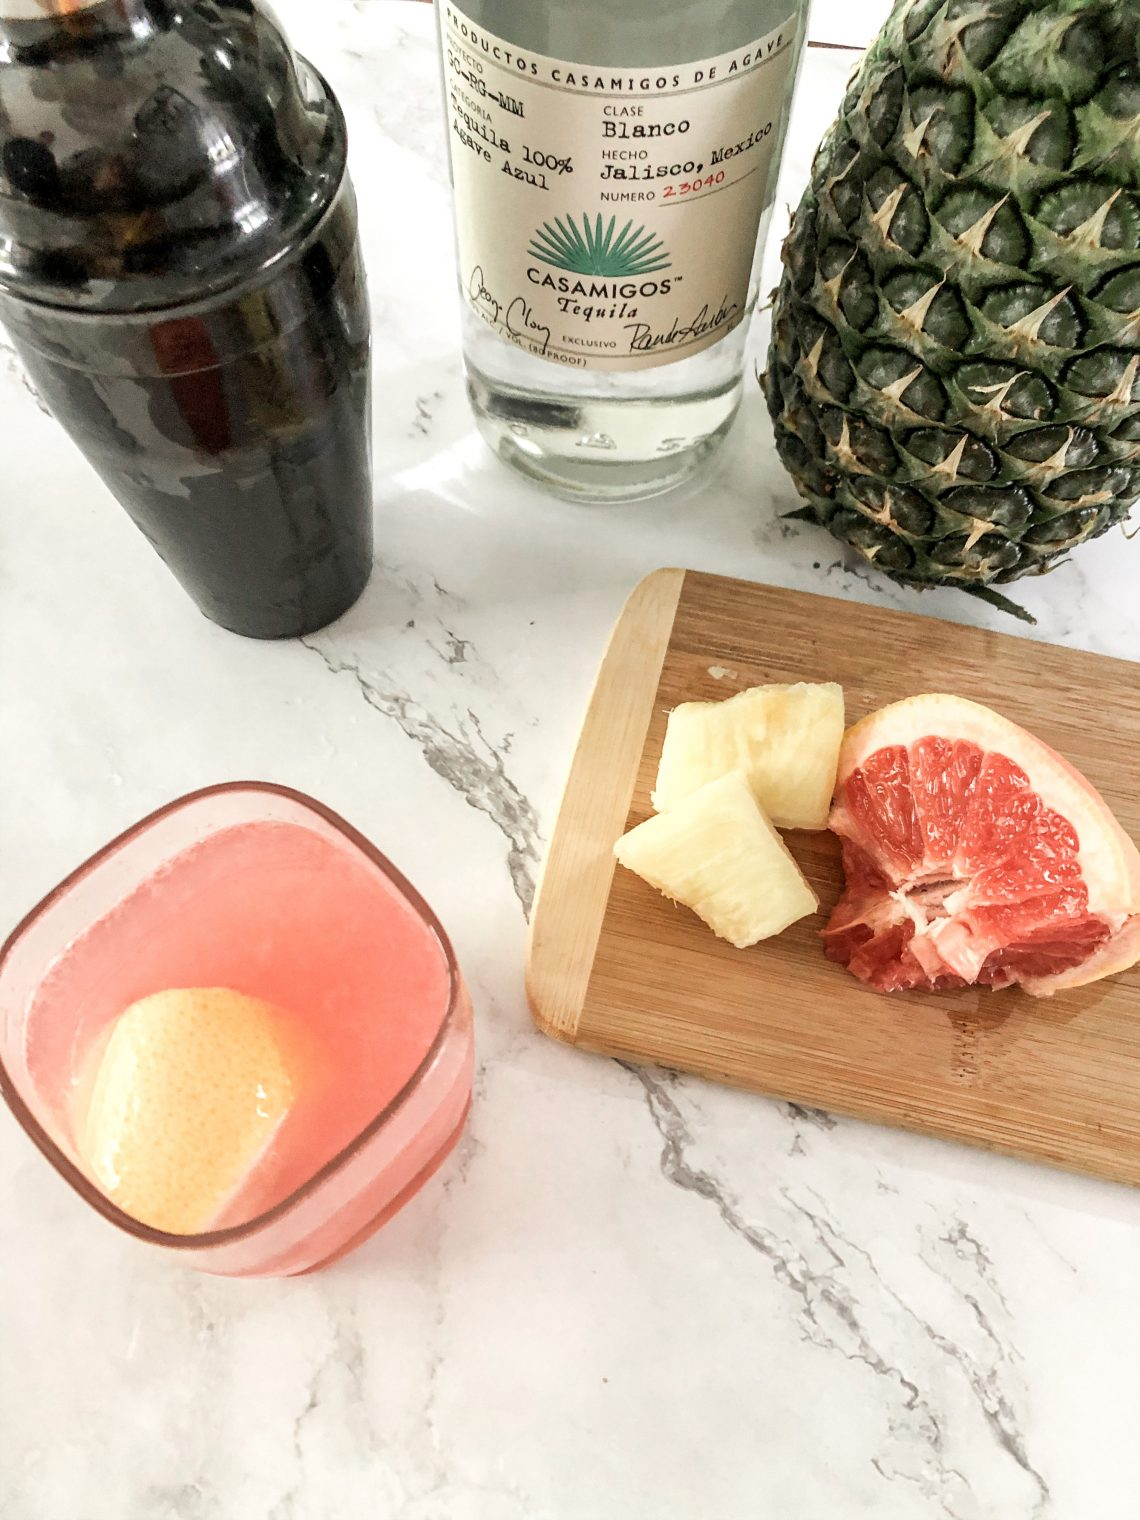 Pineapple grapefruit paloma